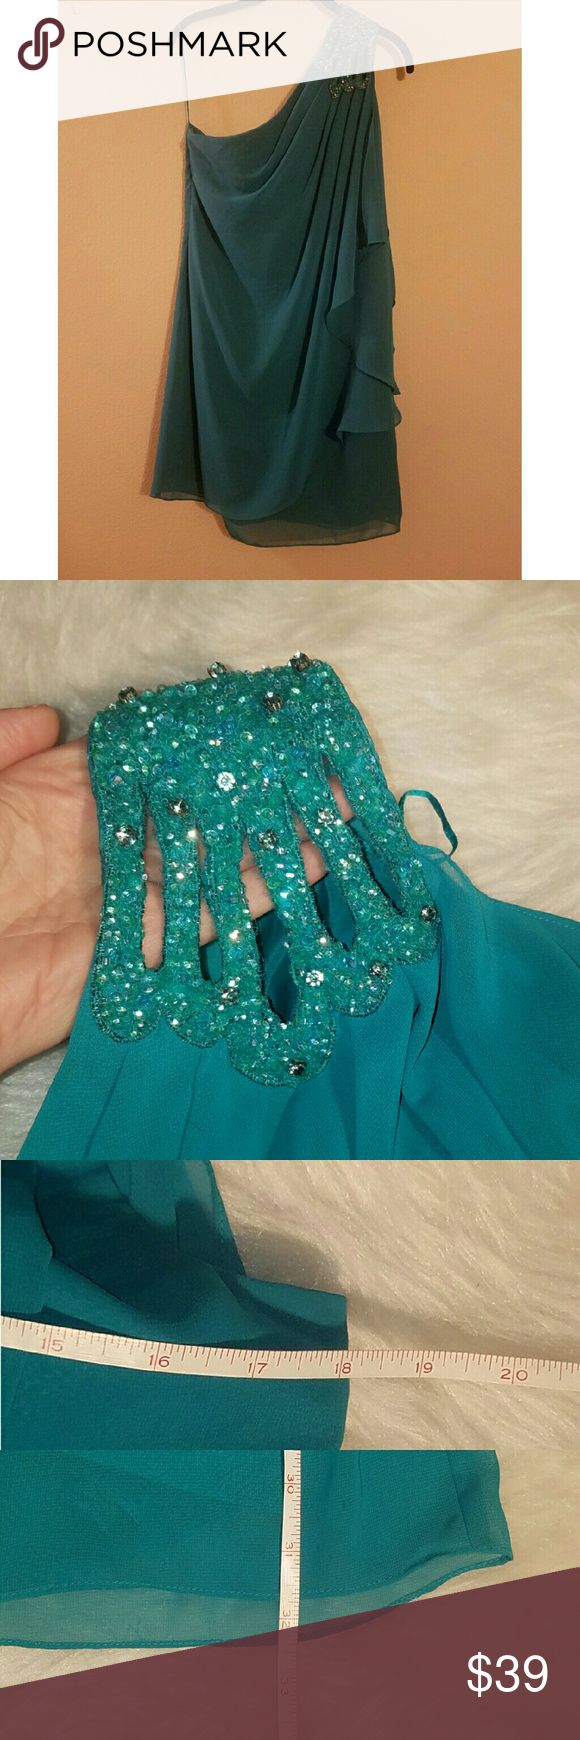 One shoulder dress with rhinestones Gorgeous dress, one shoulder, flowy shoulder, fully lined, beading and rhinestones on one shoulder, EUC!! No flaws or signs of wear JS Boutique Dresses One Shoulder